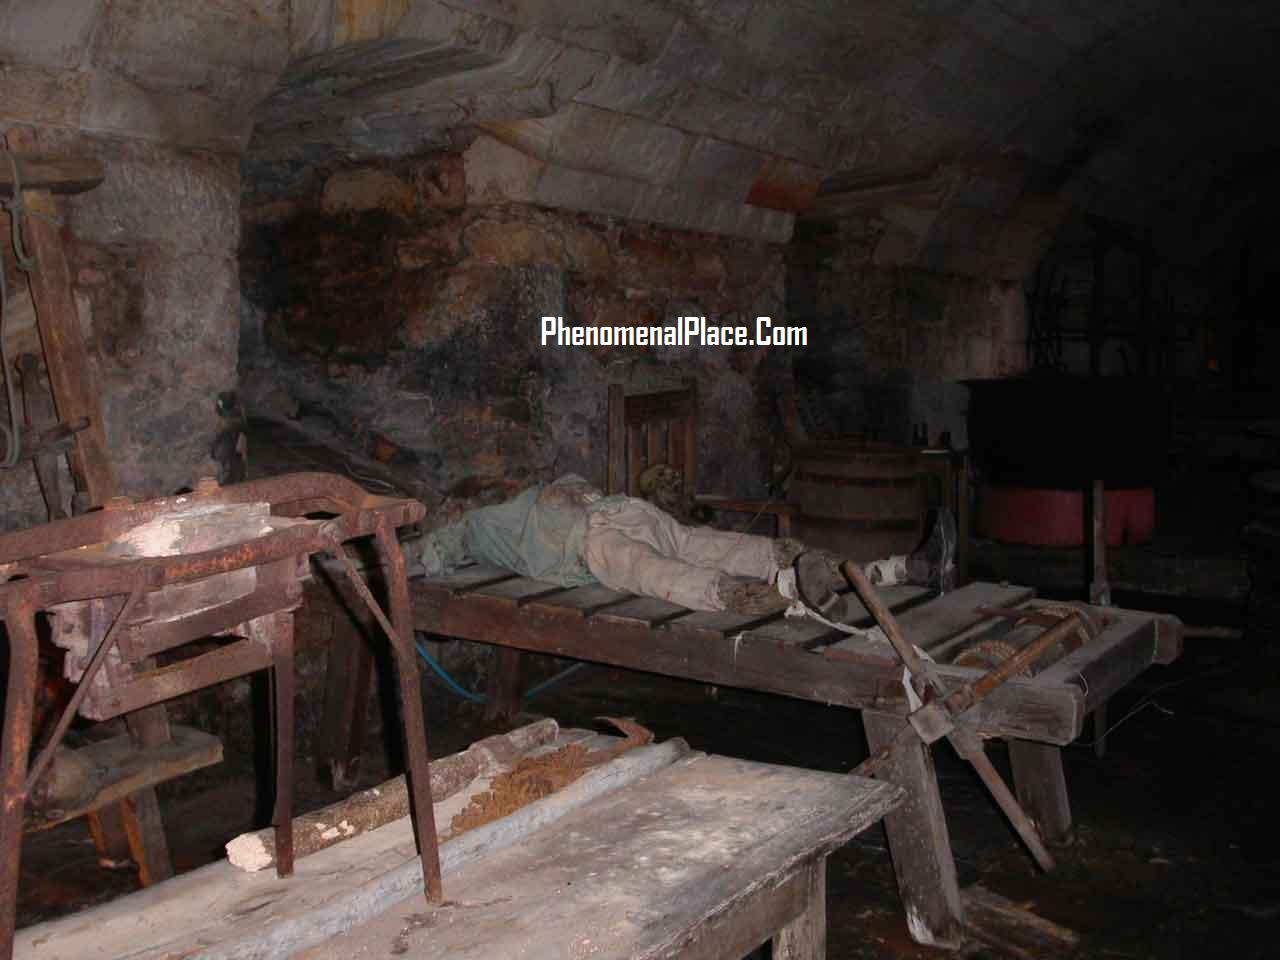 Women Tortured On The Rack http://www.phenomenalplace.com/2011/03/chillingham-castle-bone-chilling.html